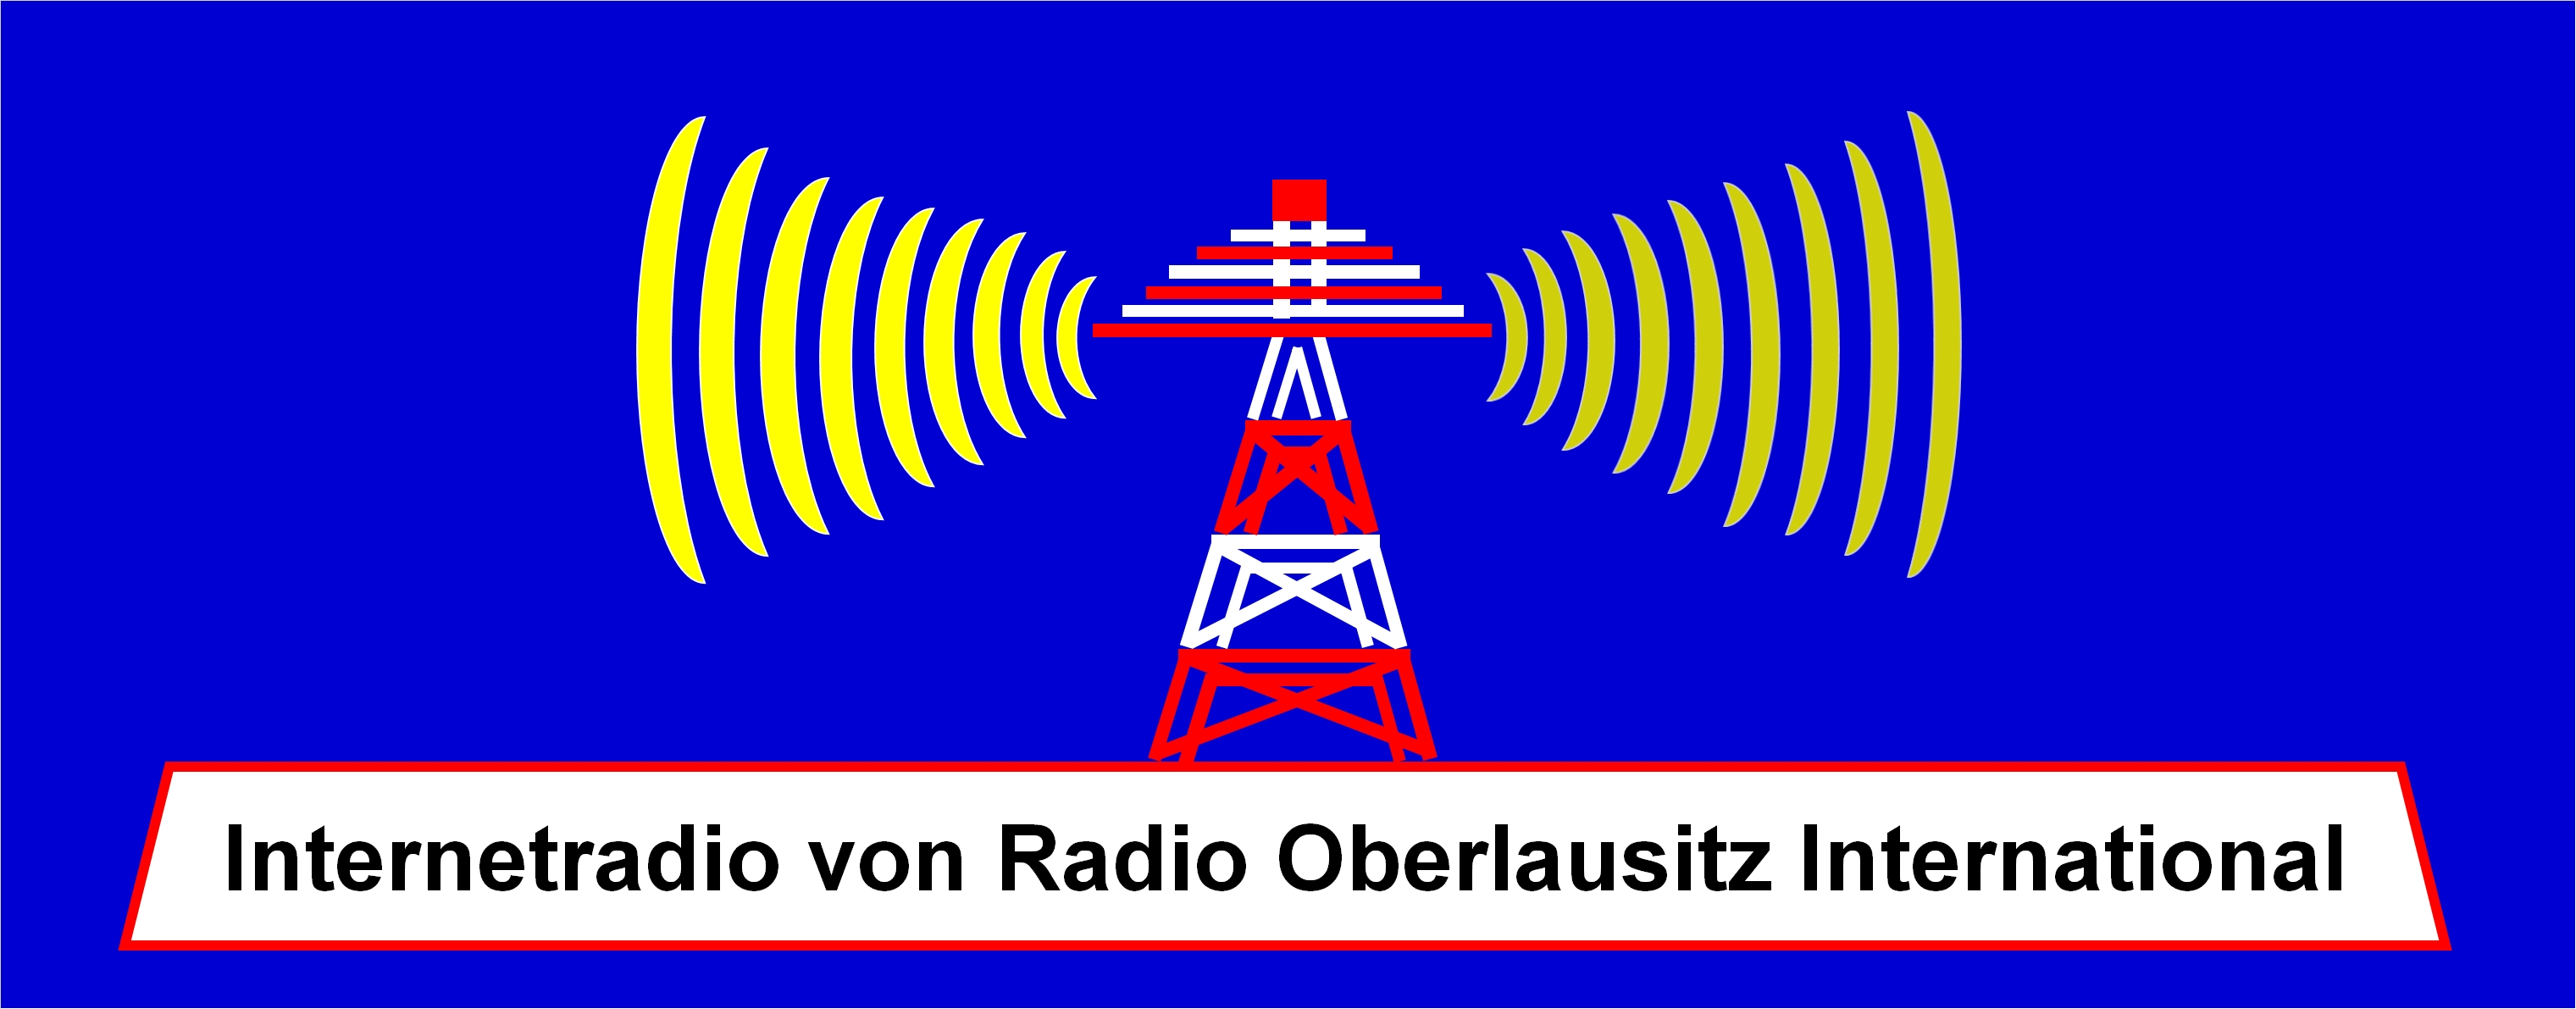 Internetradio von Radio Oberlausitz International